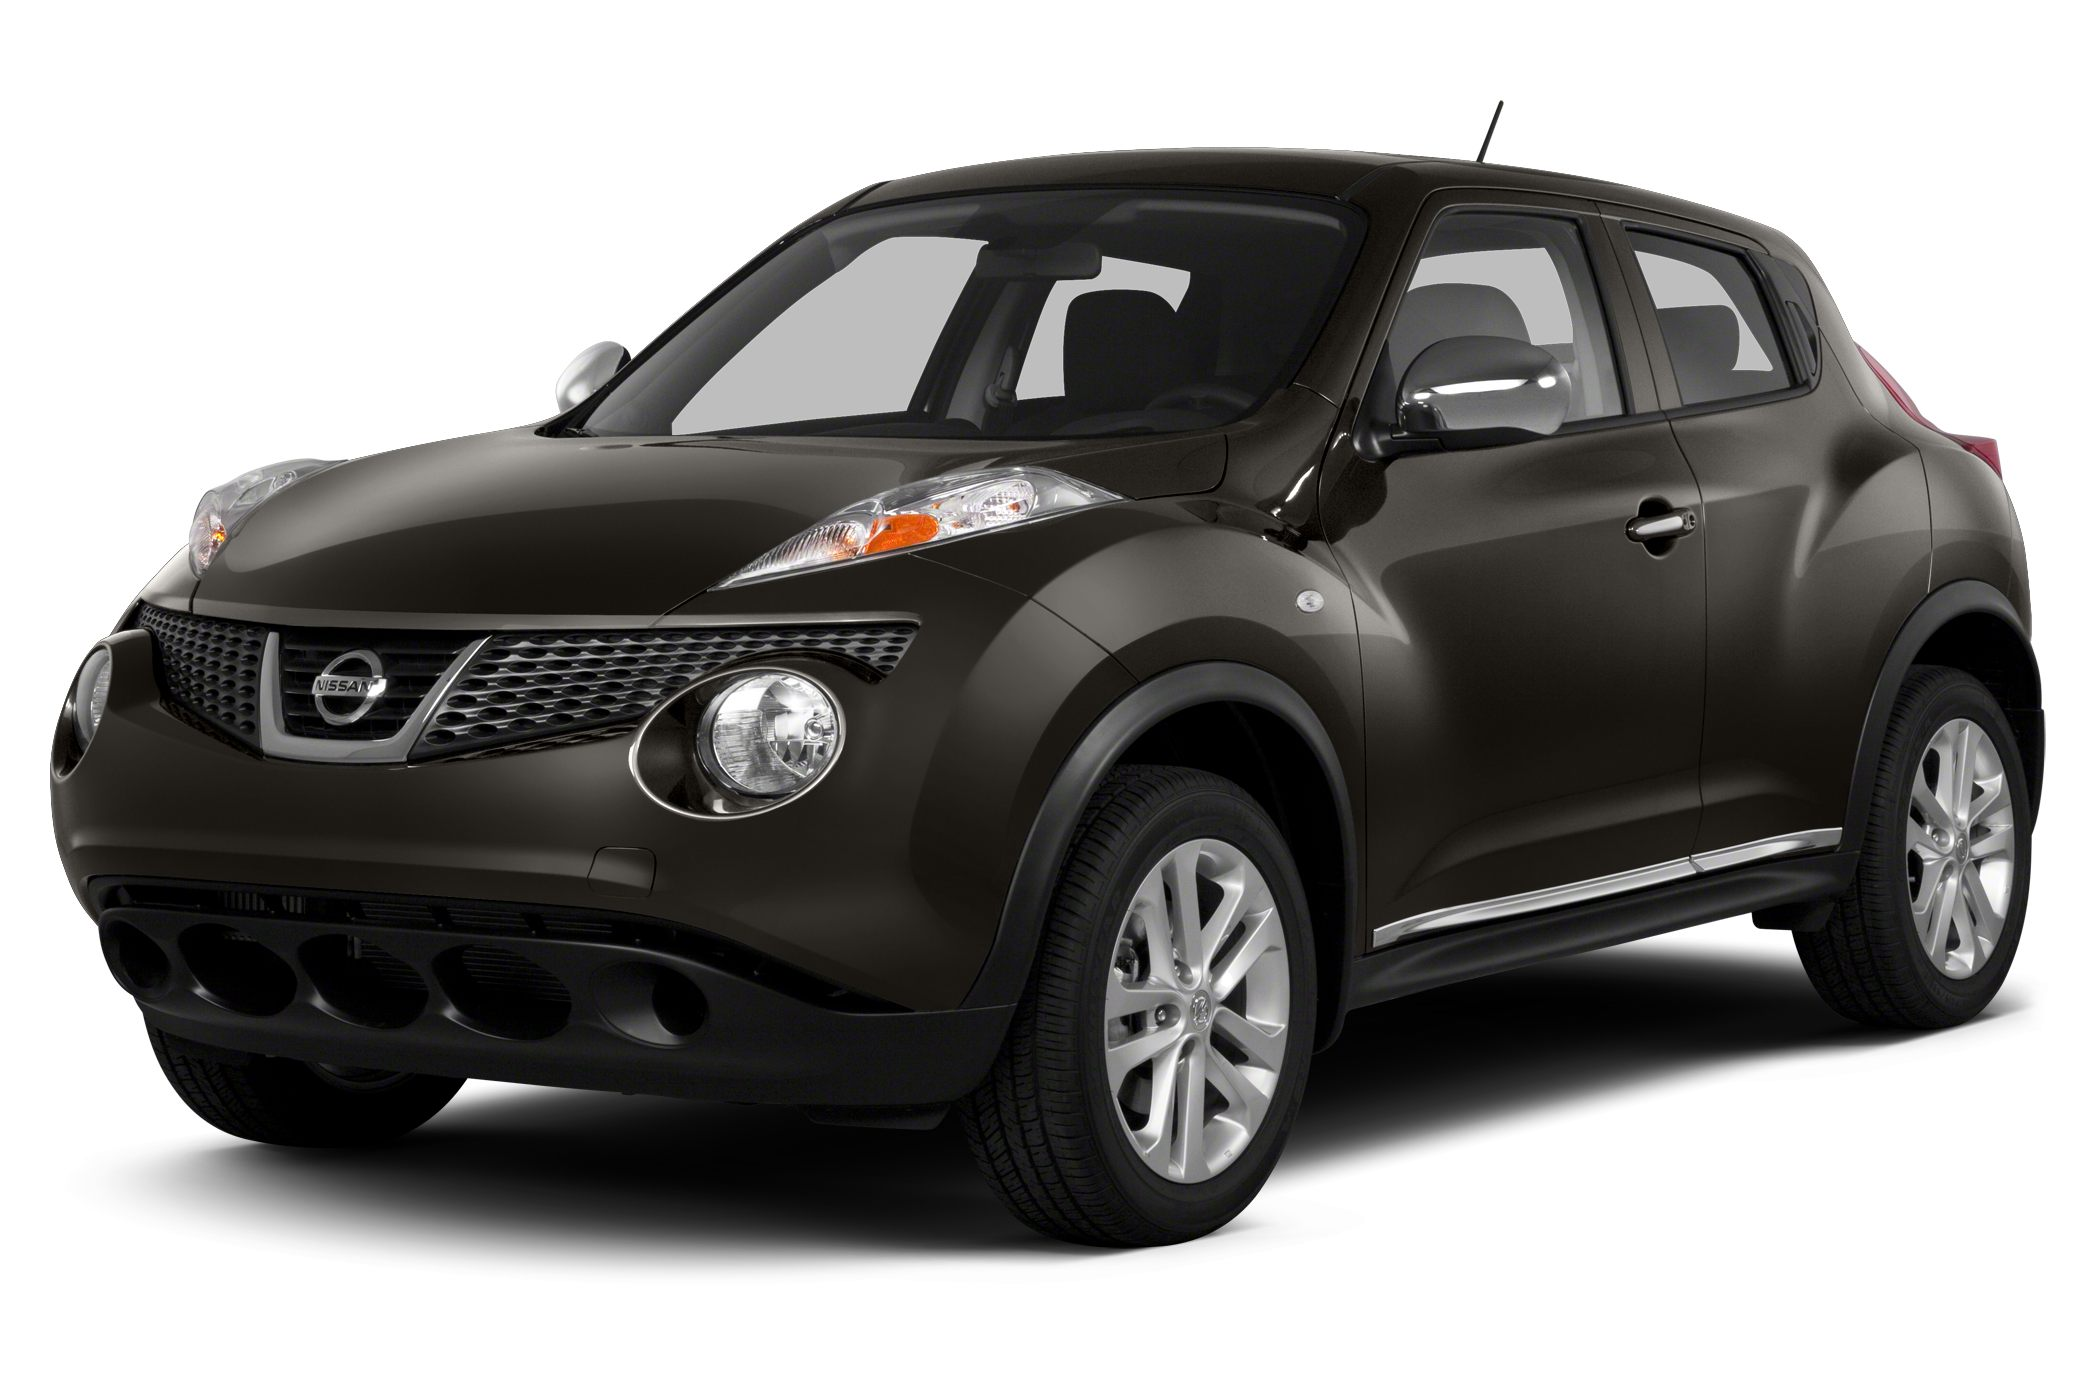 2013 Nissan Juke S Snatch a deal on this 2013 Nissan JUKE S before someone else snatches it Roomy